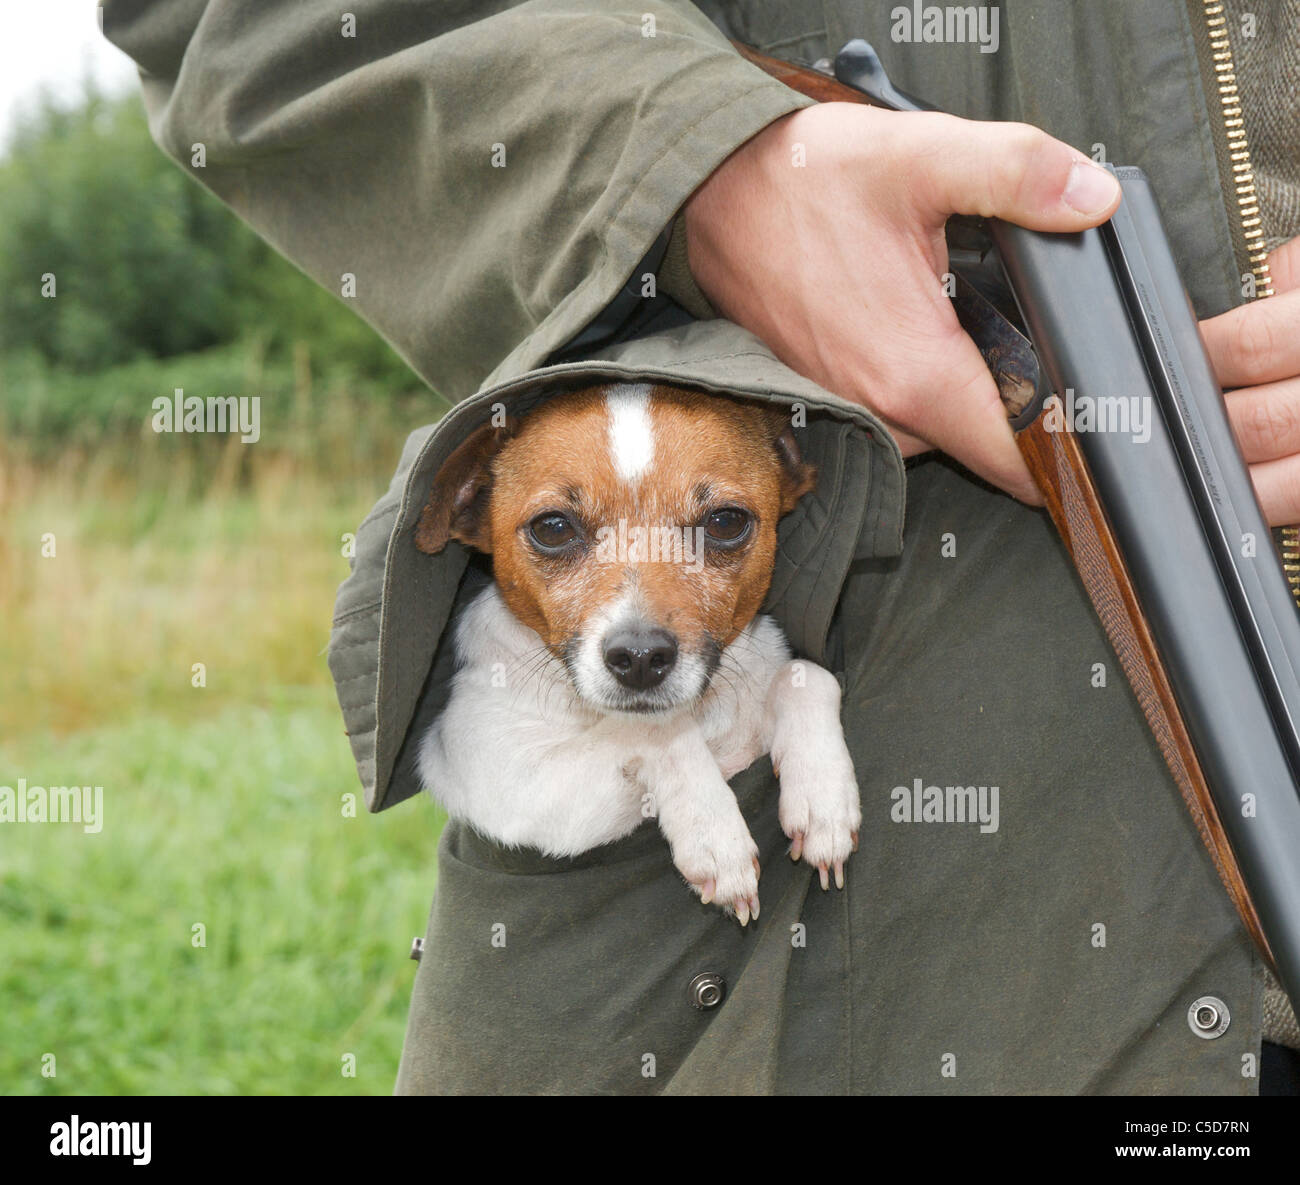 Pocket beagle size